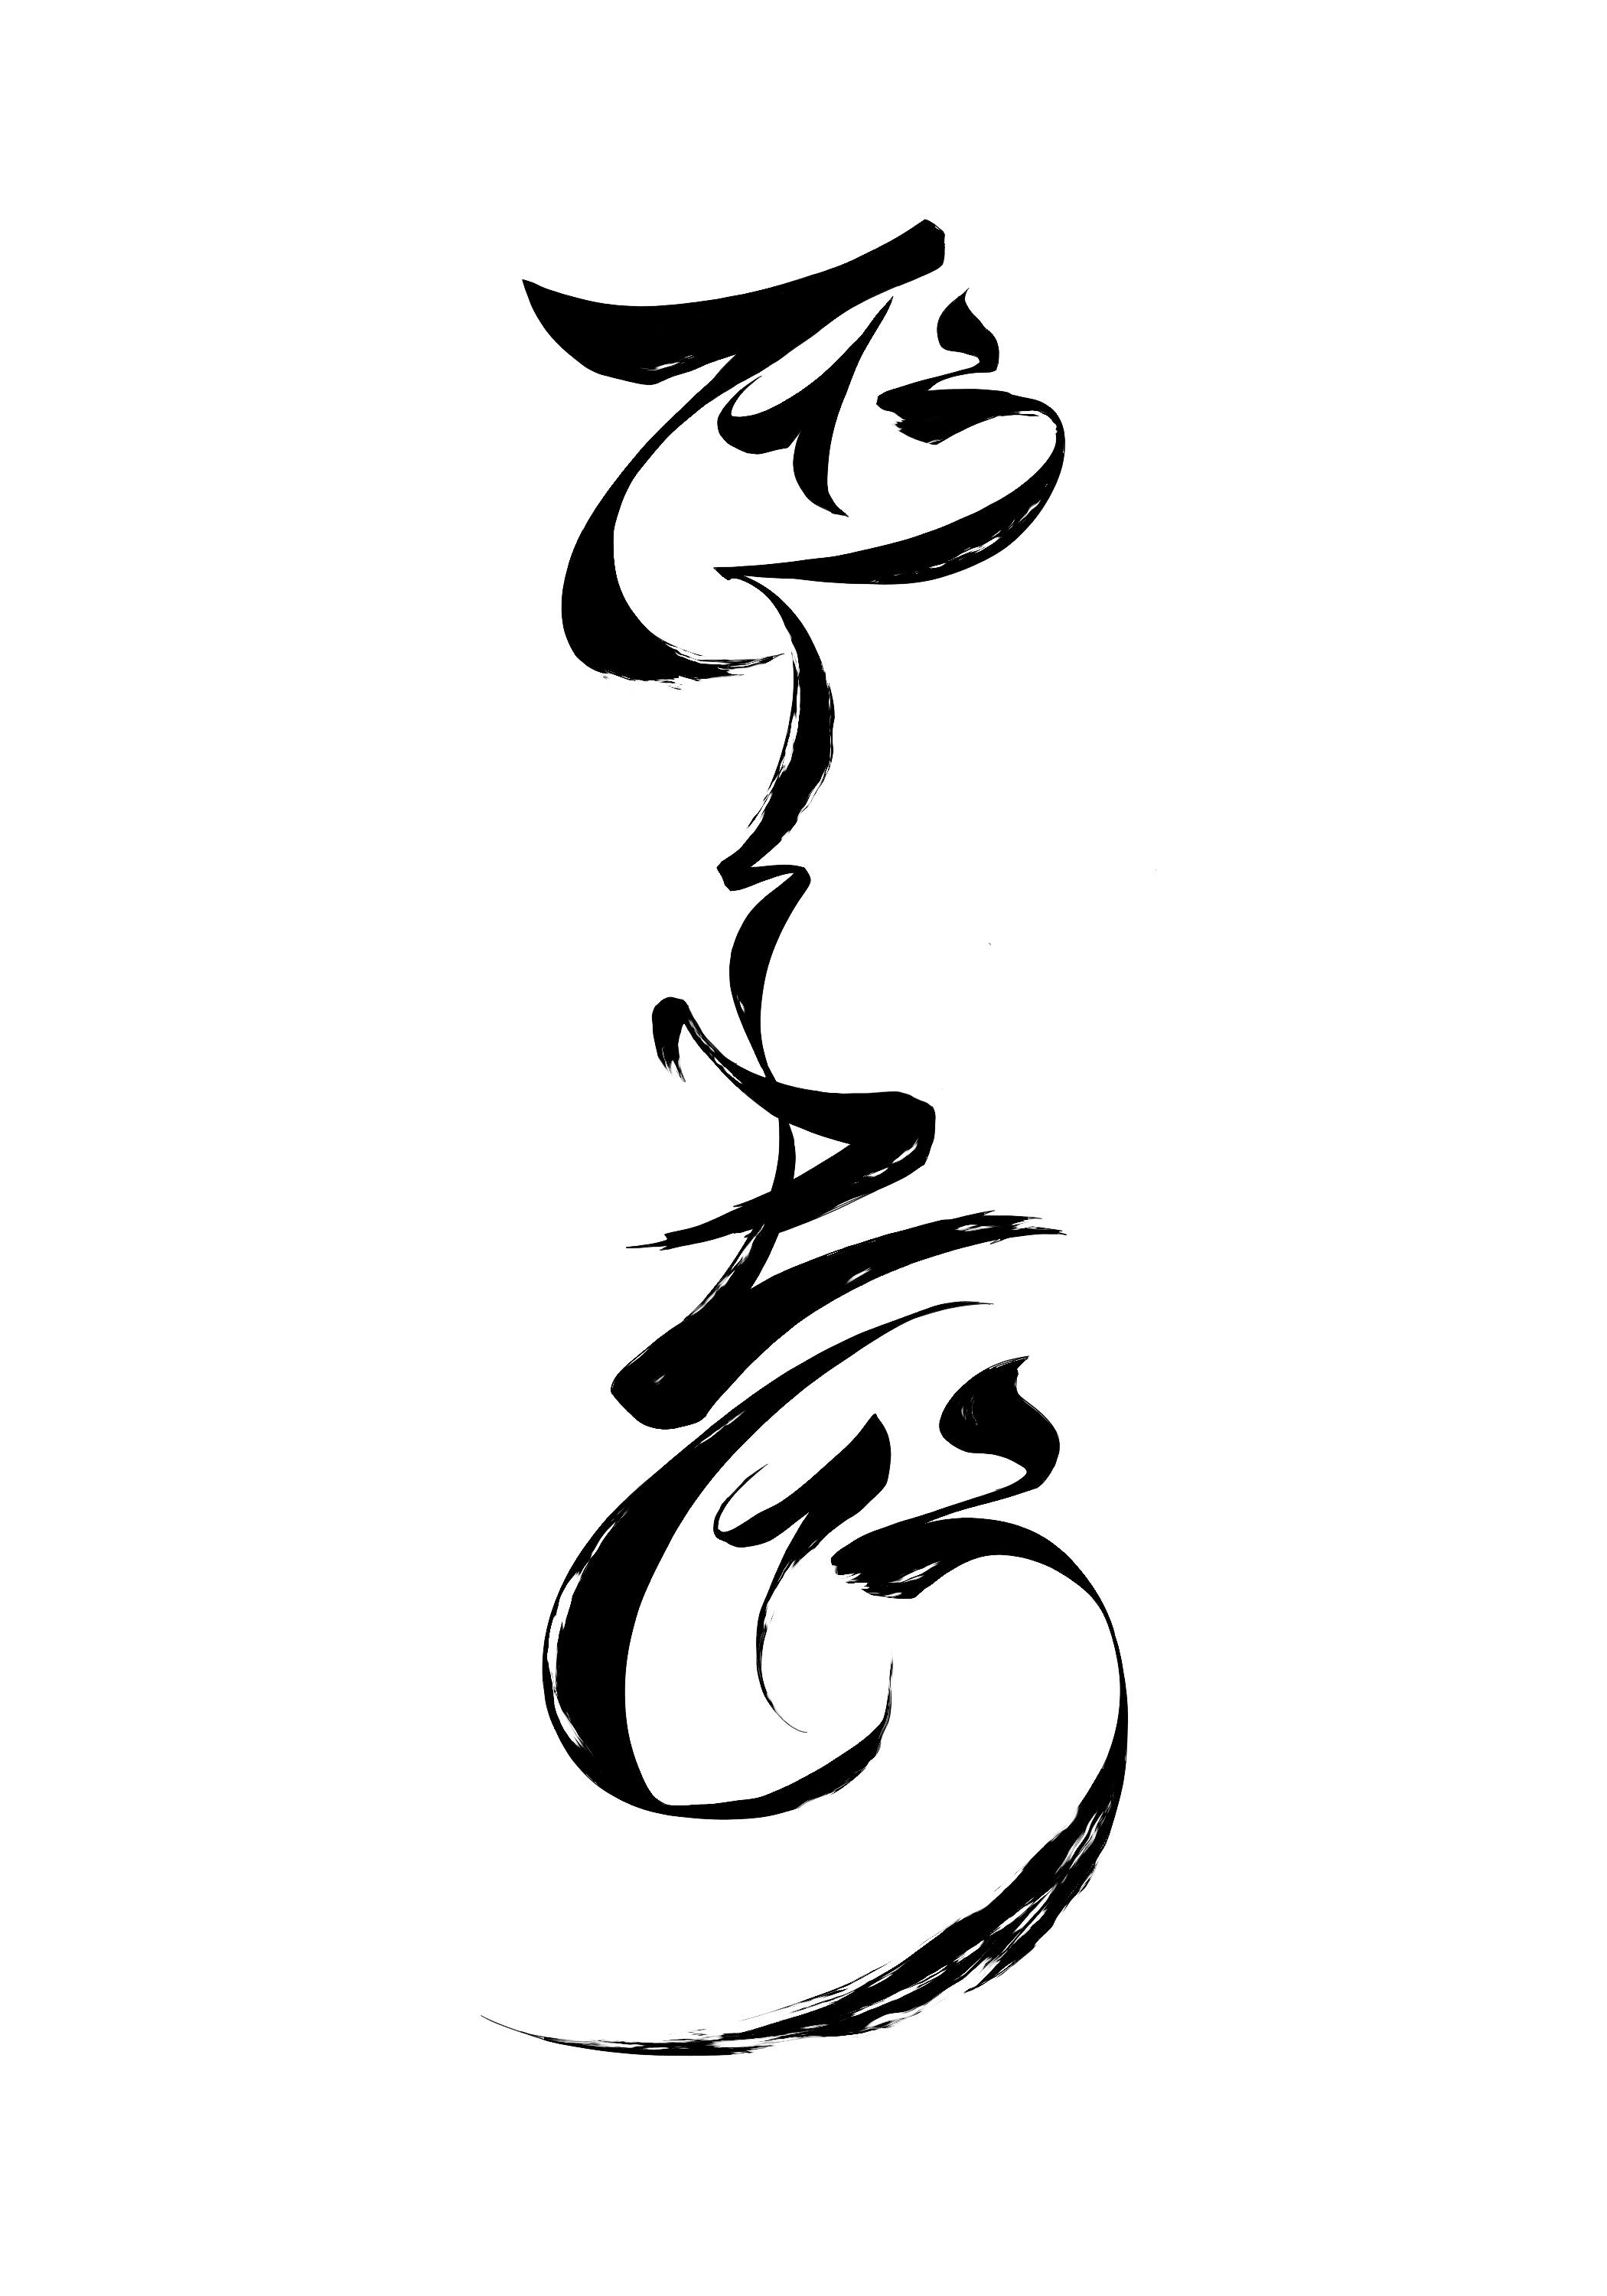 Hadaan — A writing system I used to document my personal